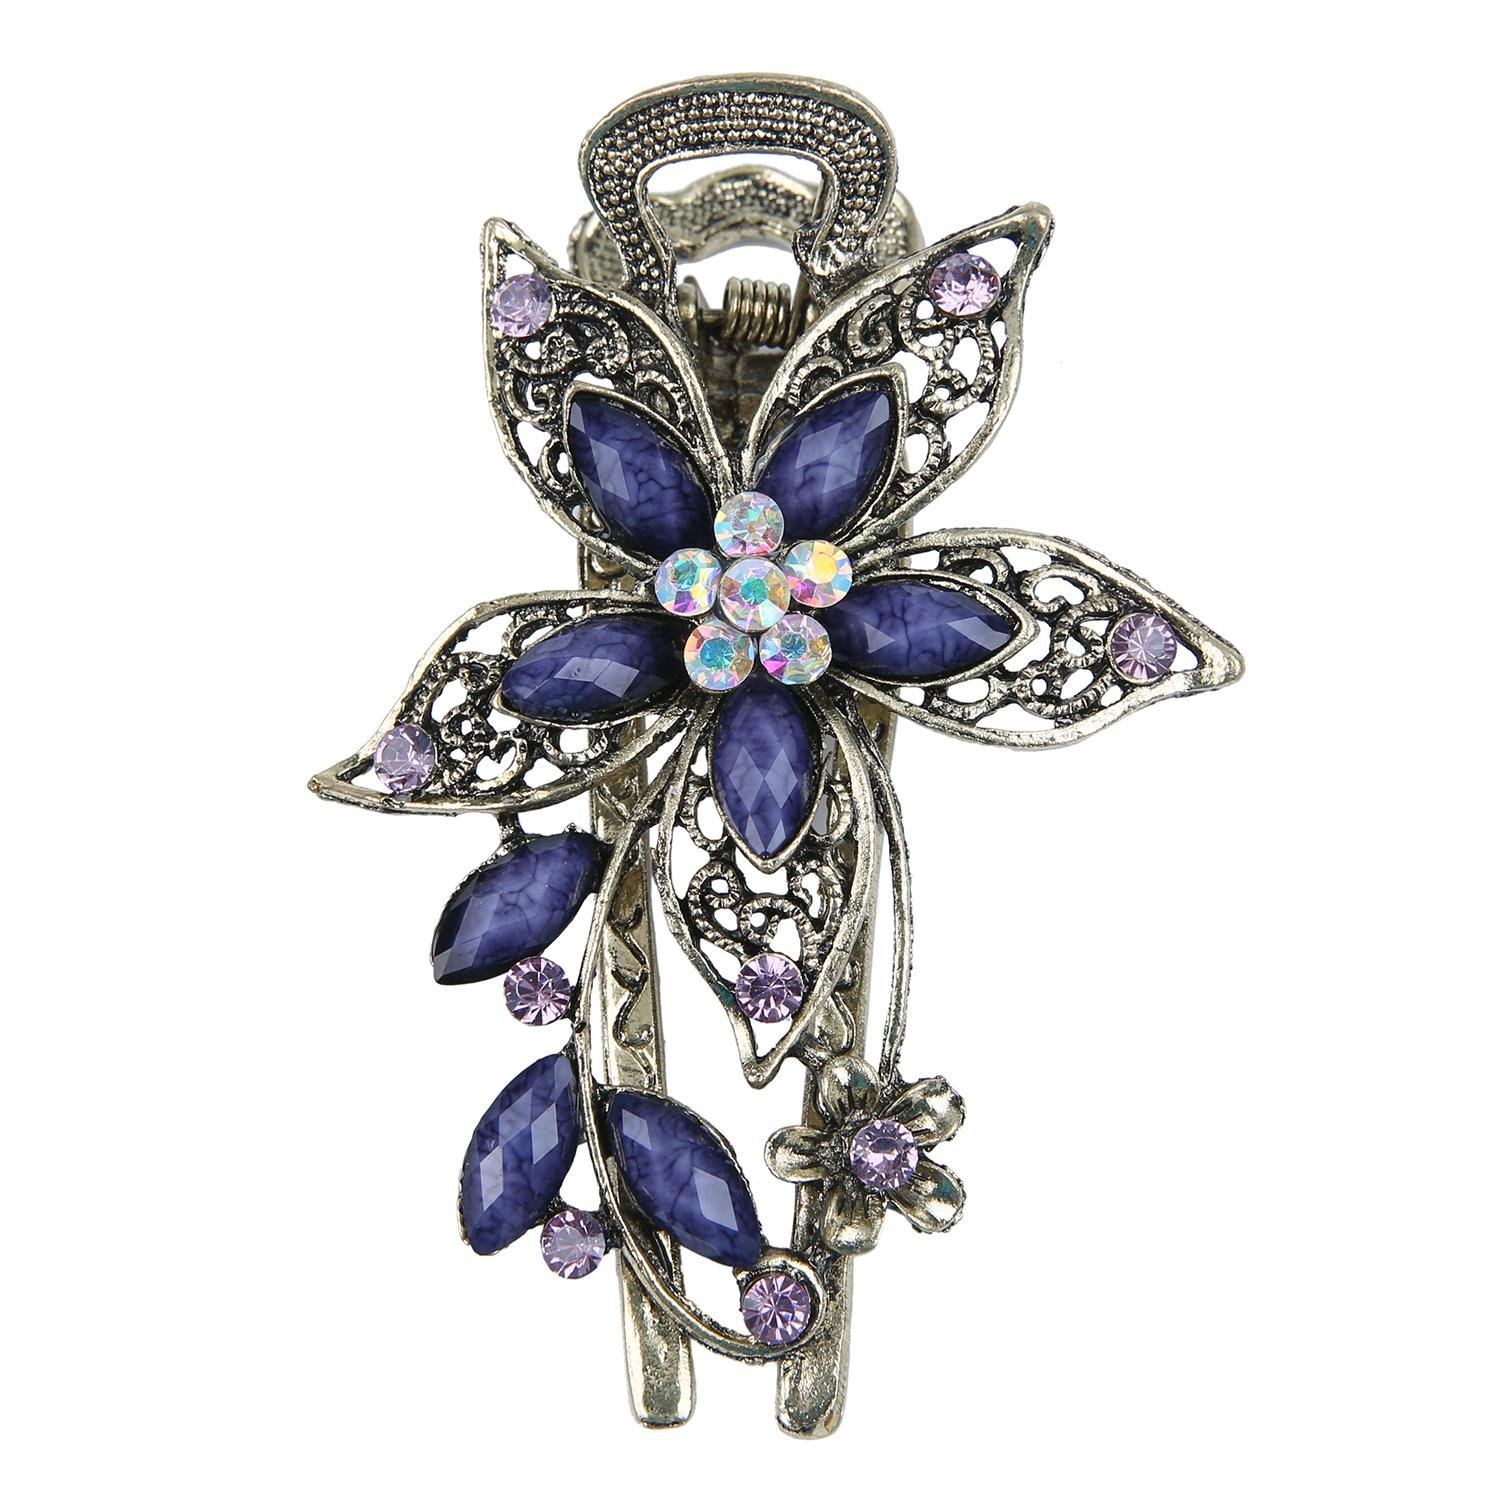 Butterfly hair accessories for weddings uk - Niceeshop Tm Vintage Jewelry Beautiful Charm Flower Crystal Rhinestone Hair Clips Hair Pins Antique Bronze Purple